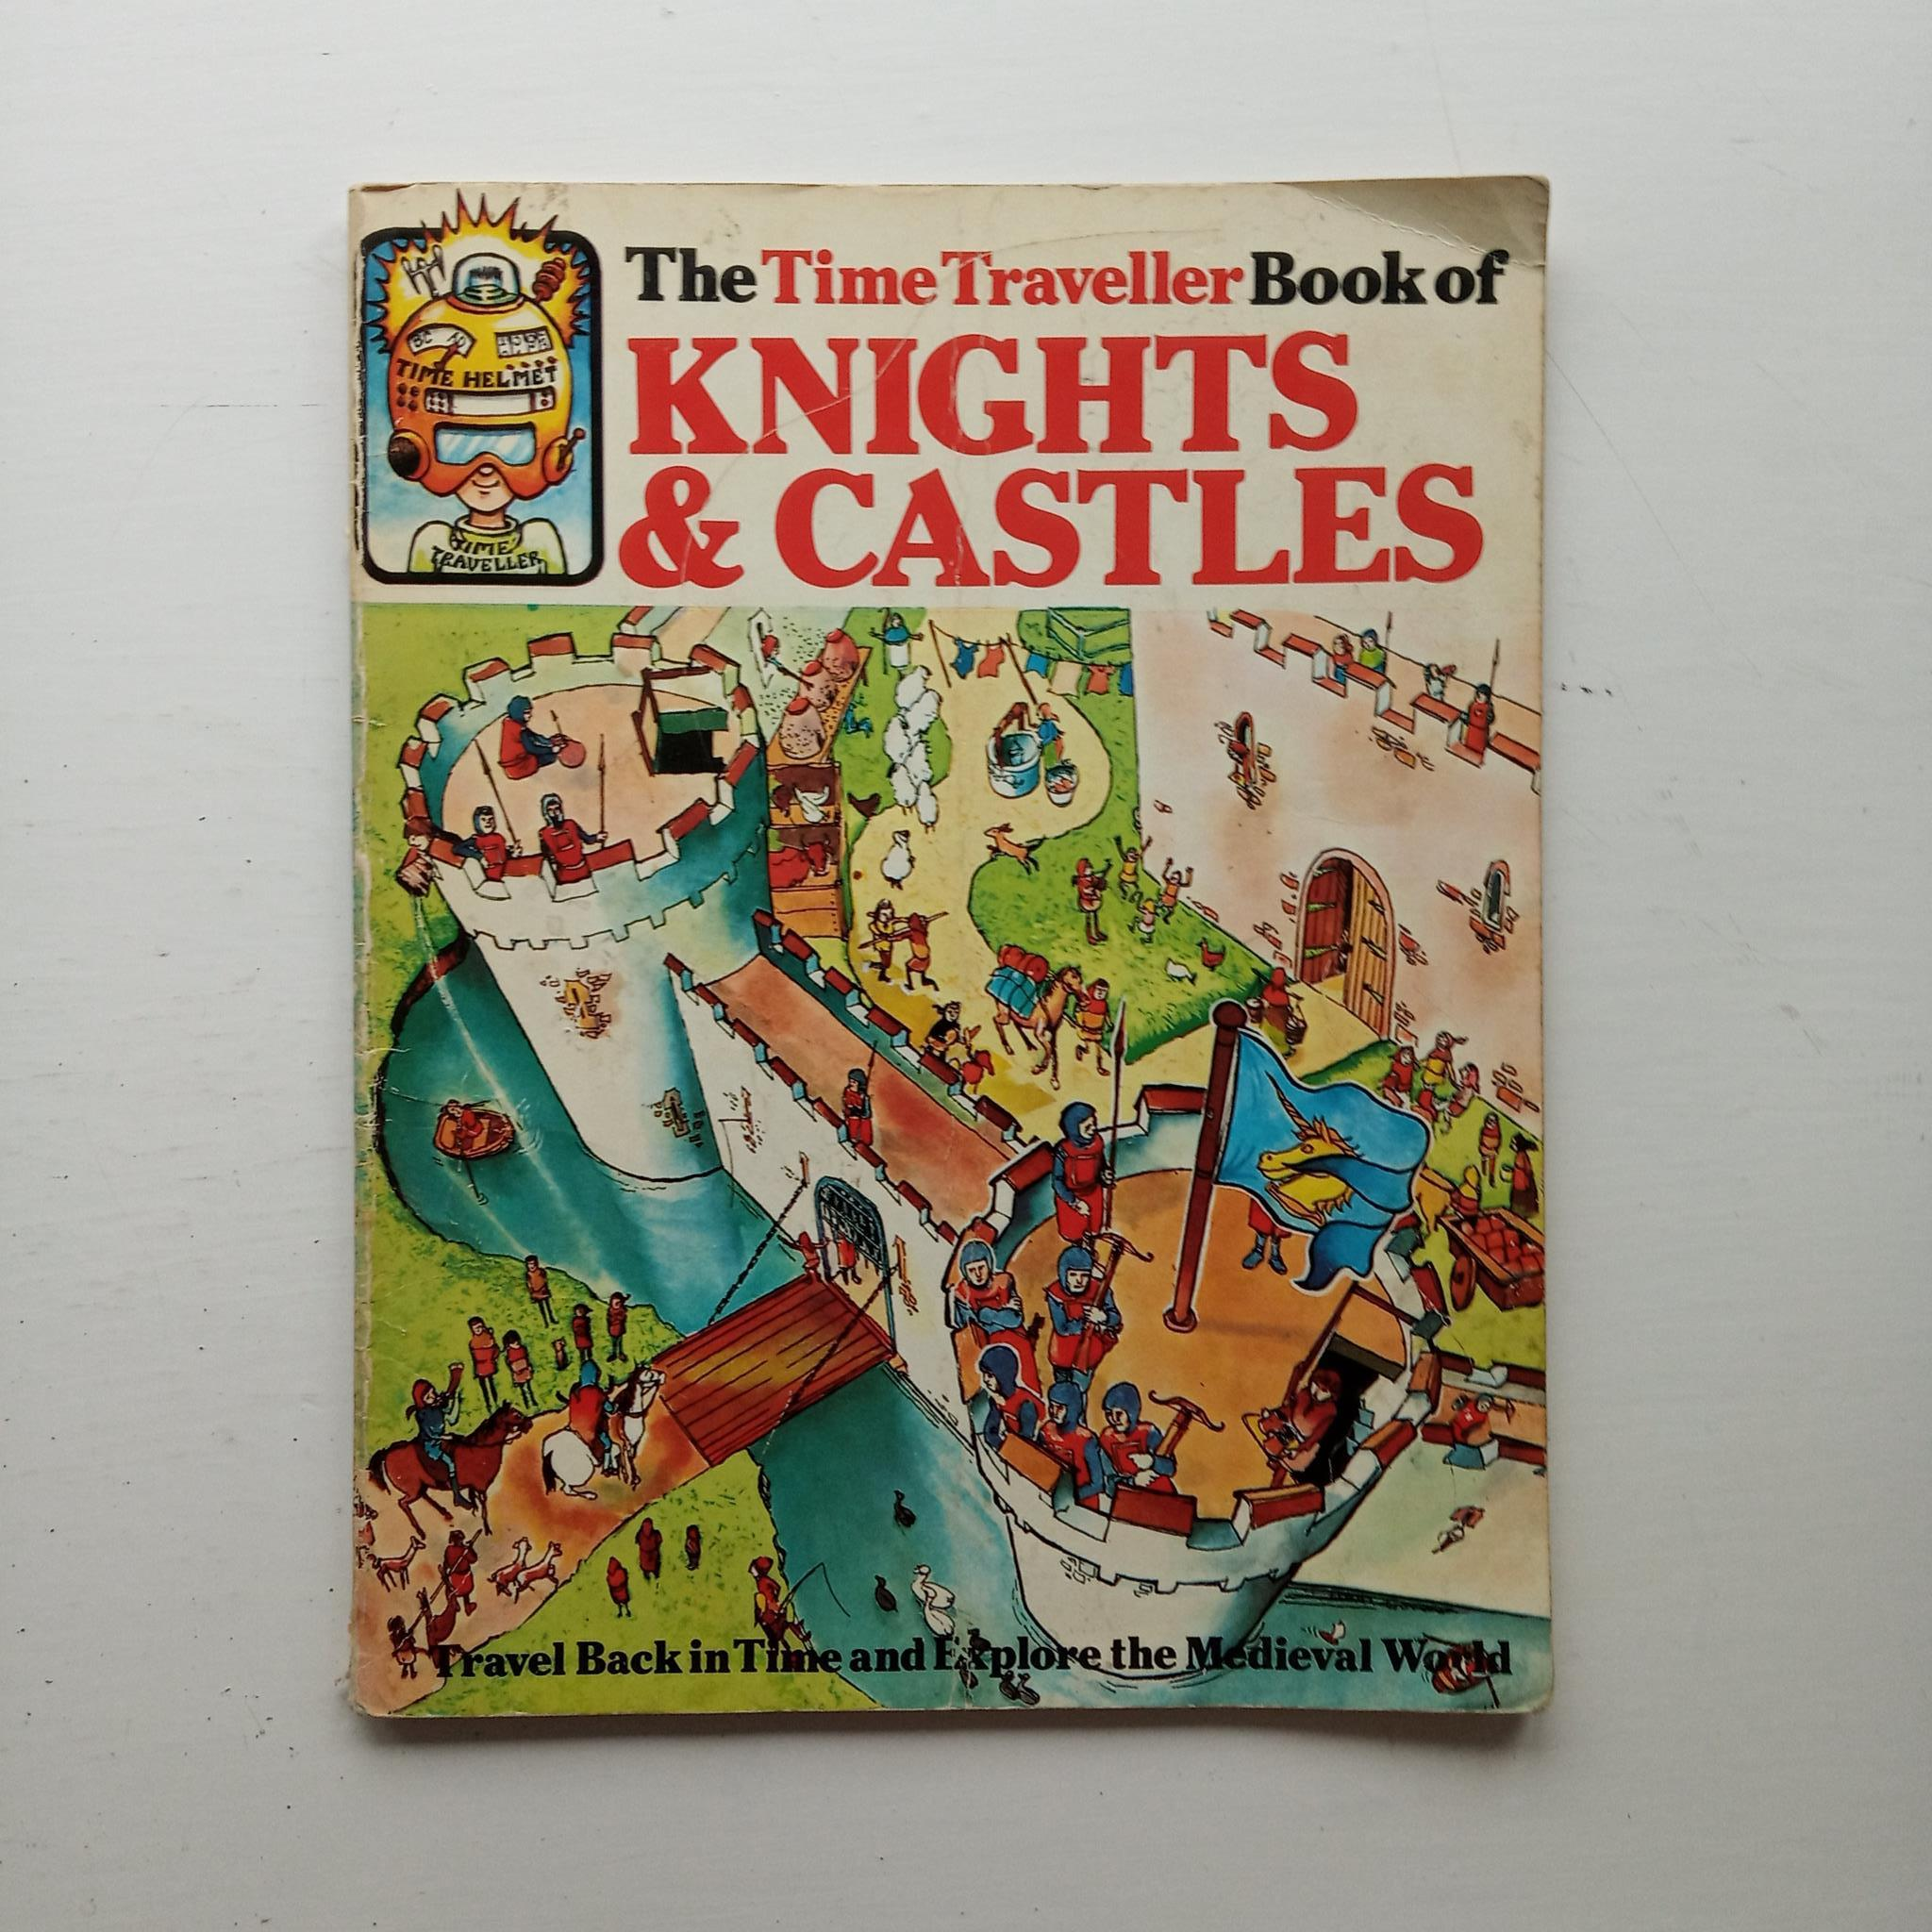 The Time Traveller Book of Knights and Castles by Judy Hindley